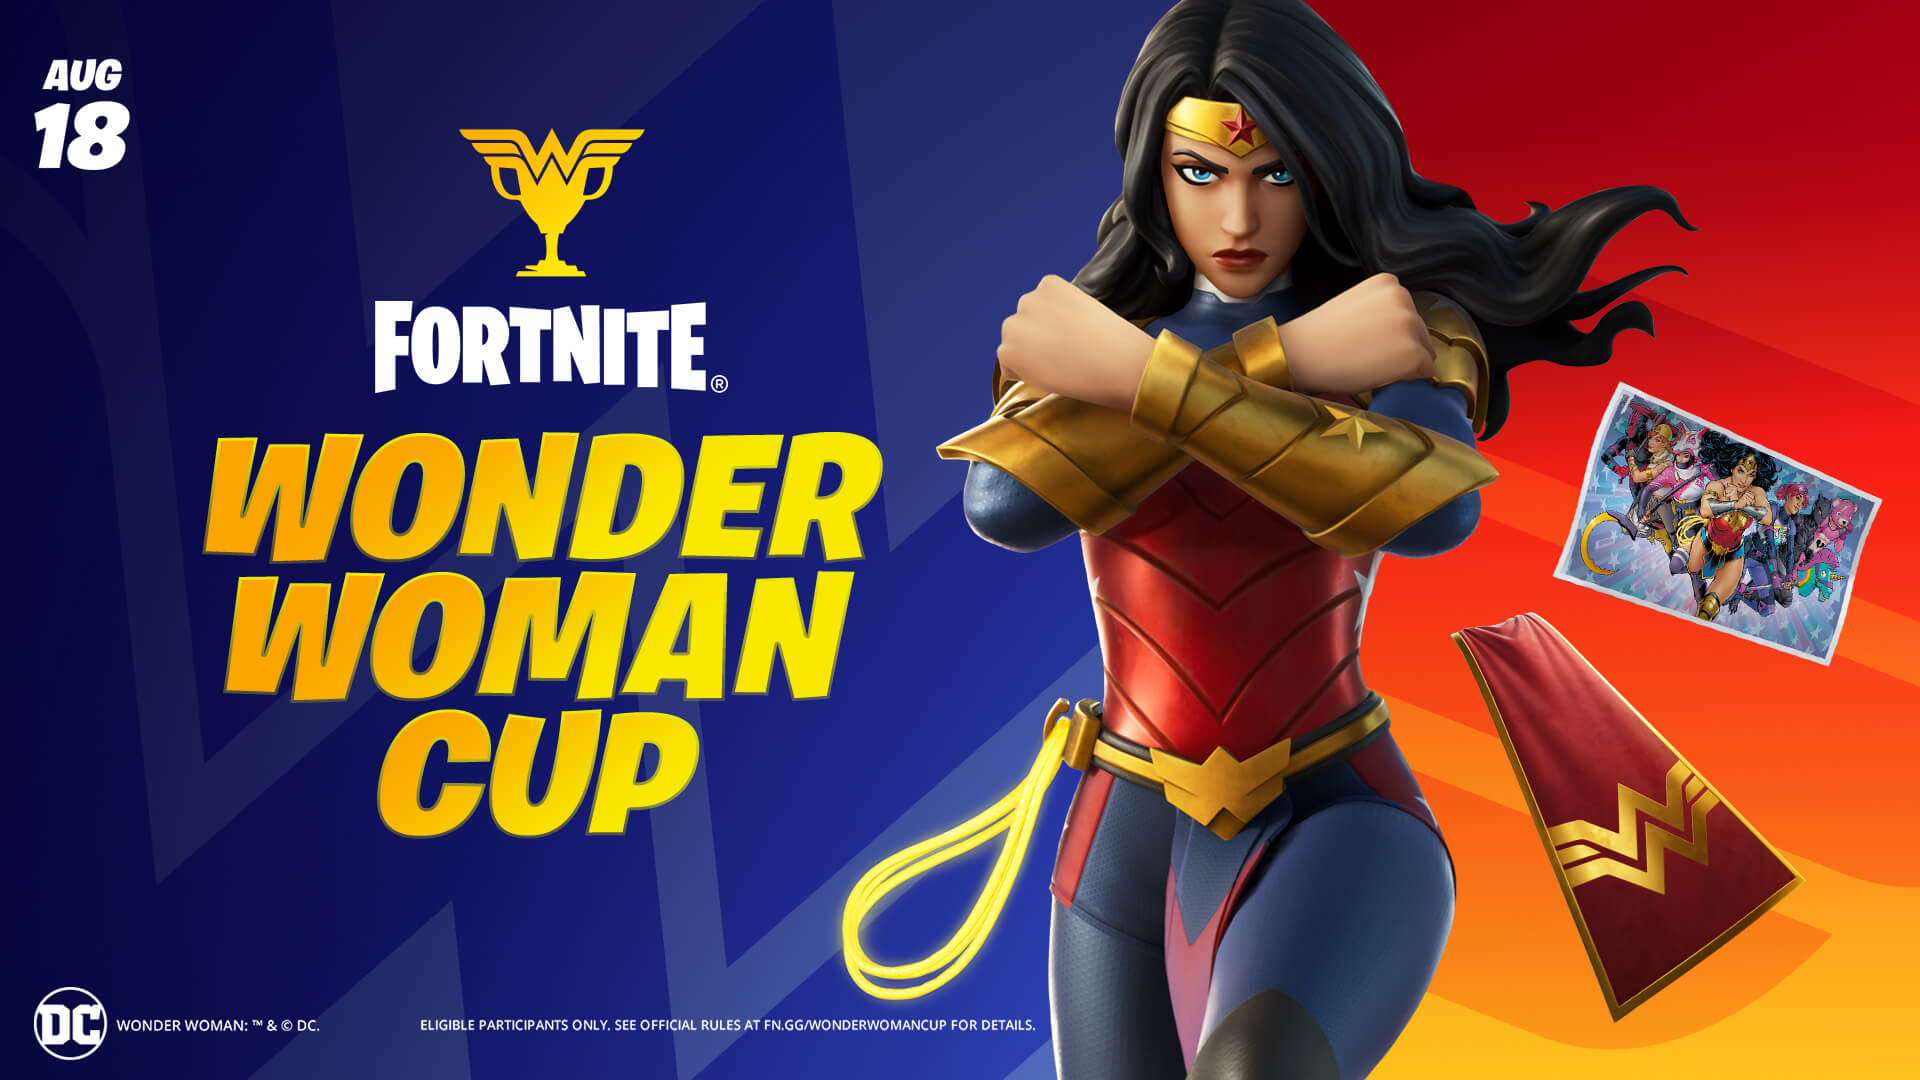 Fortnite Wonder Woman Outfit And Items